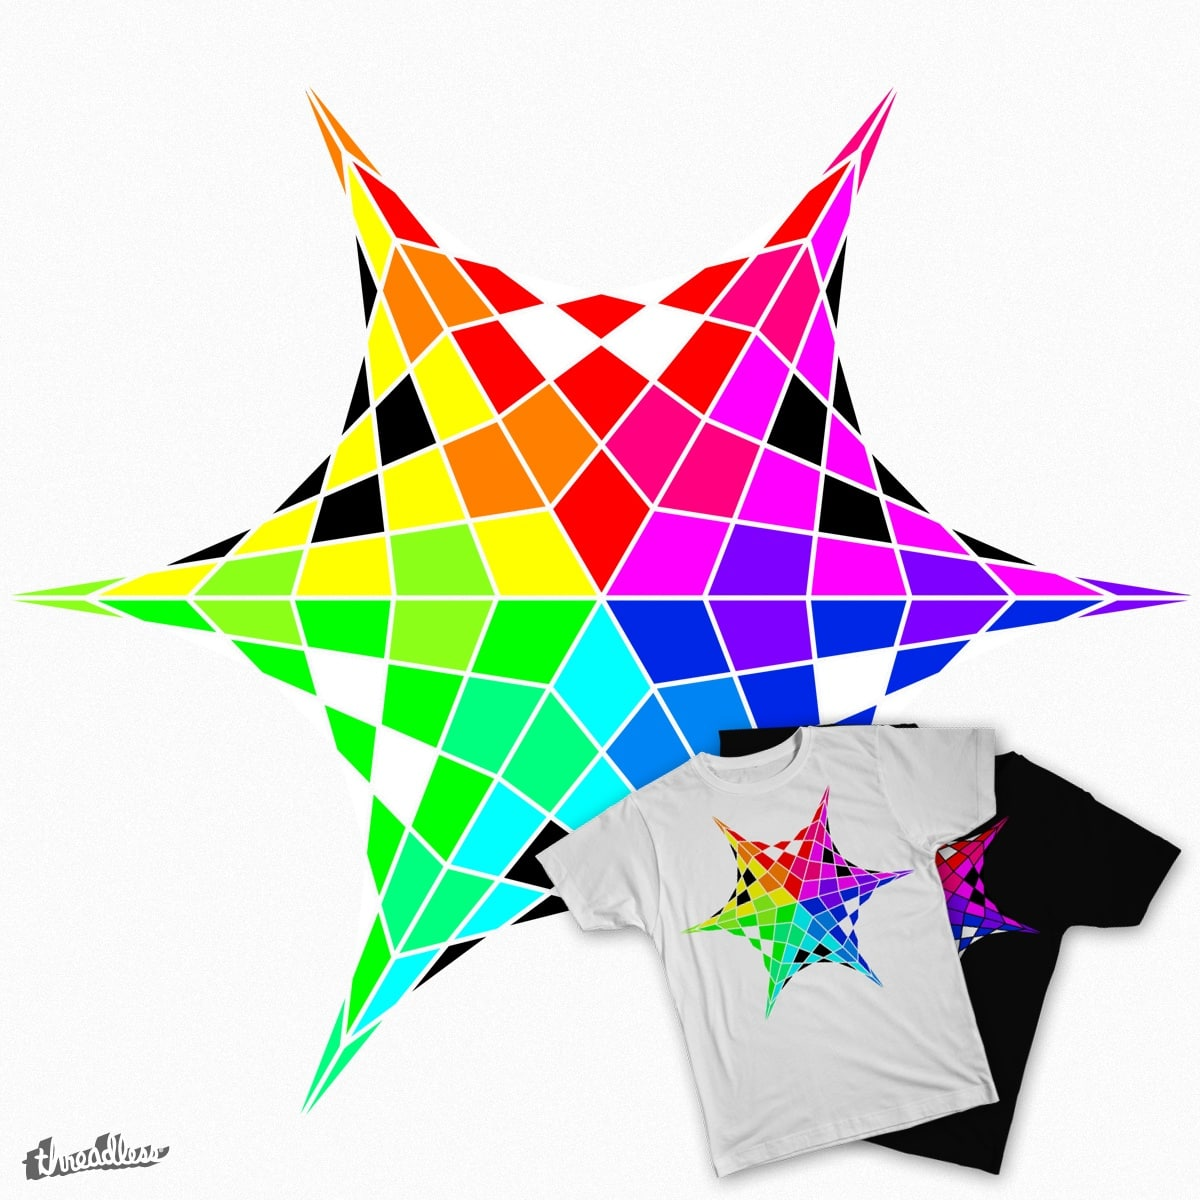 Score Color Wheel Star By Eriklectric On Threadless